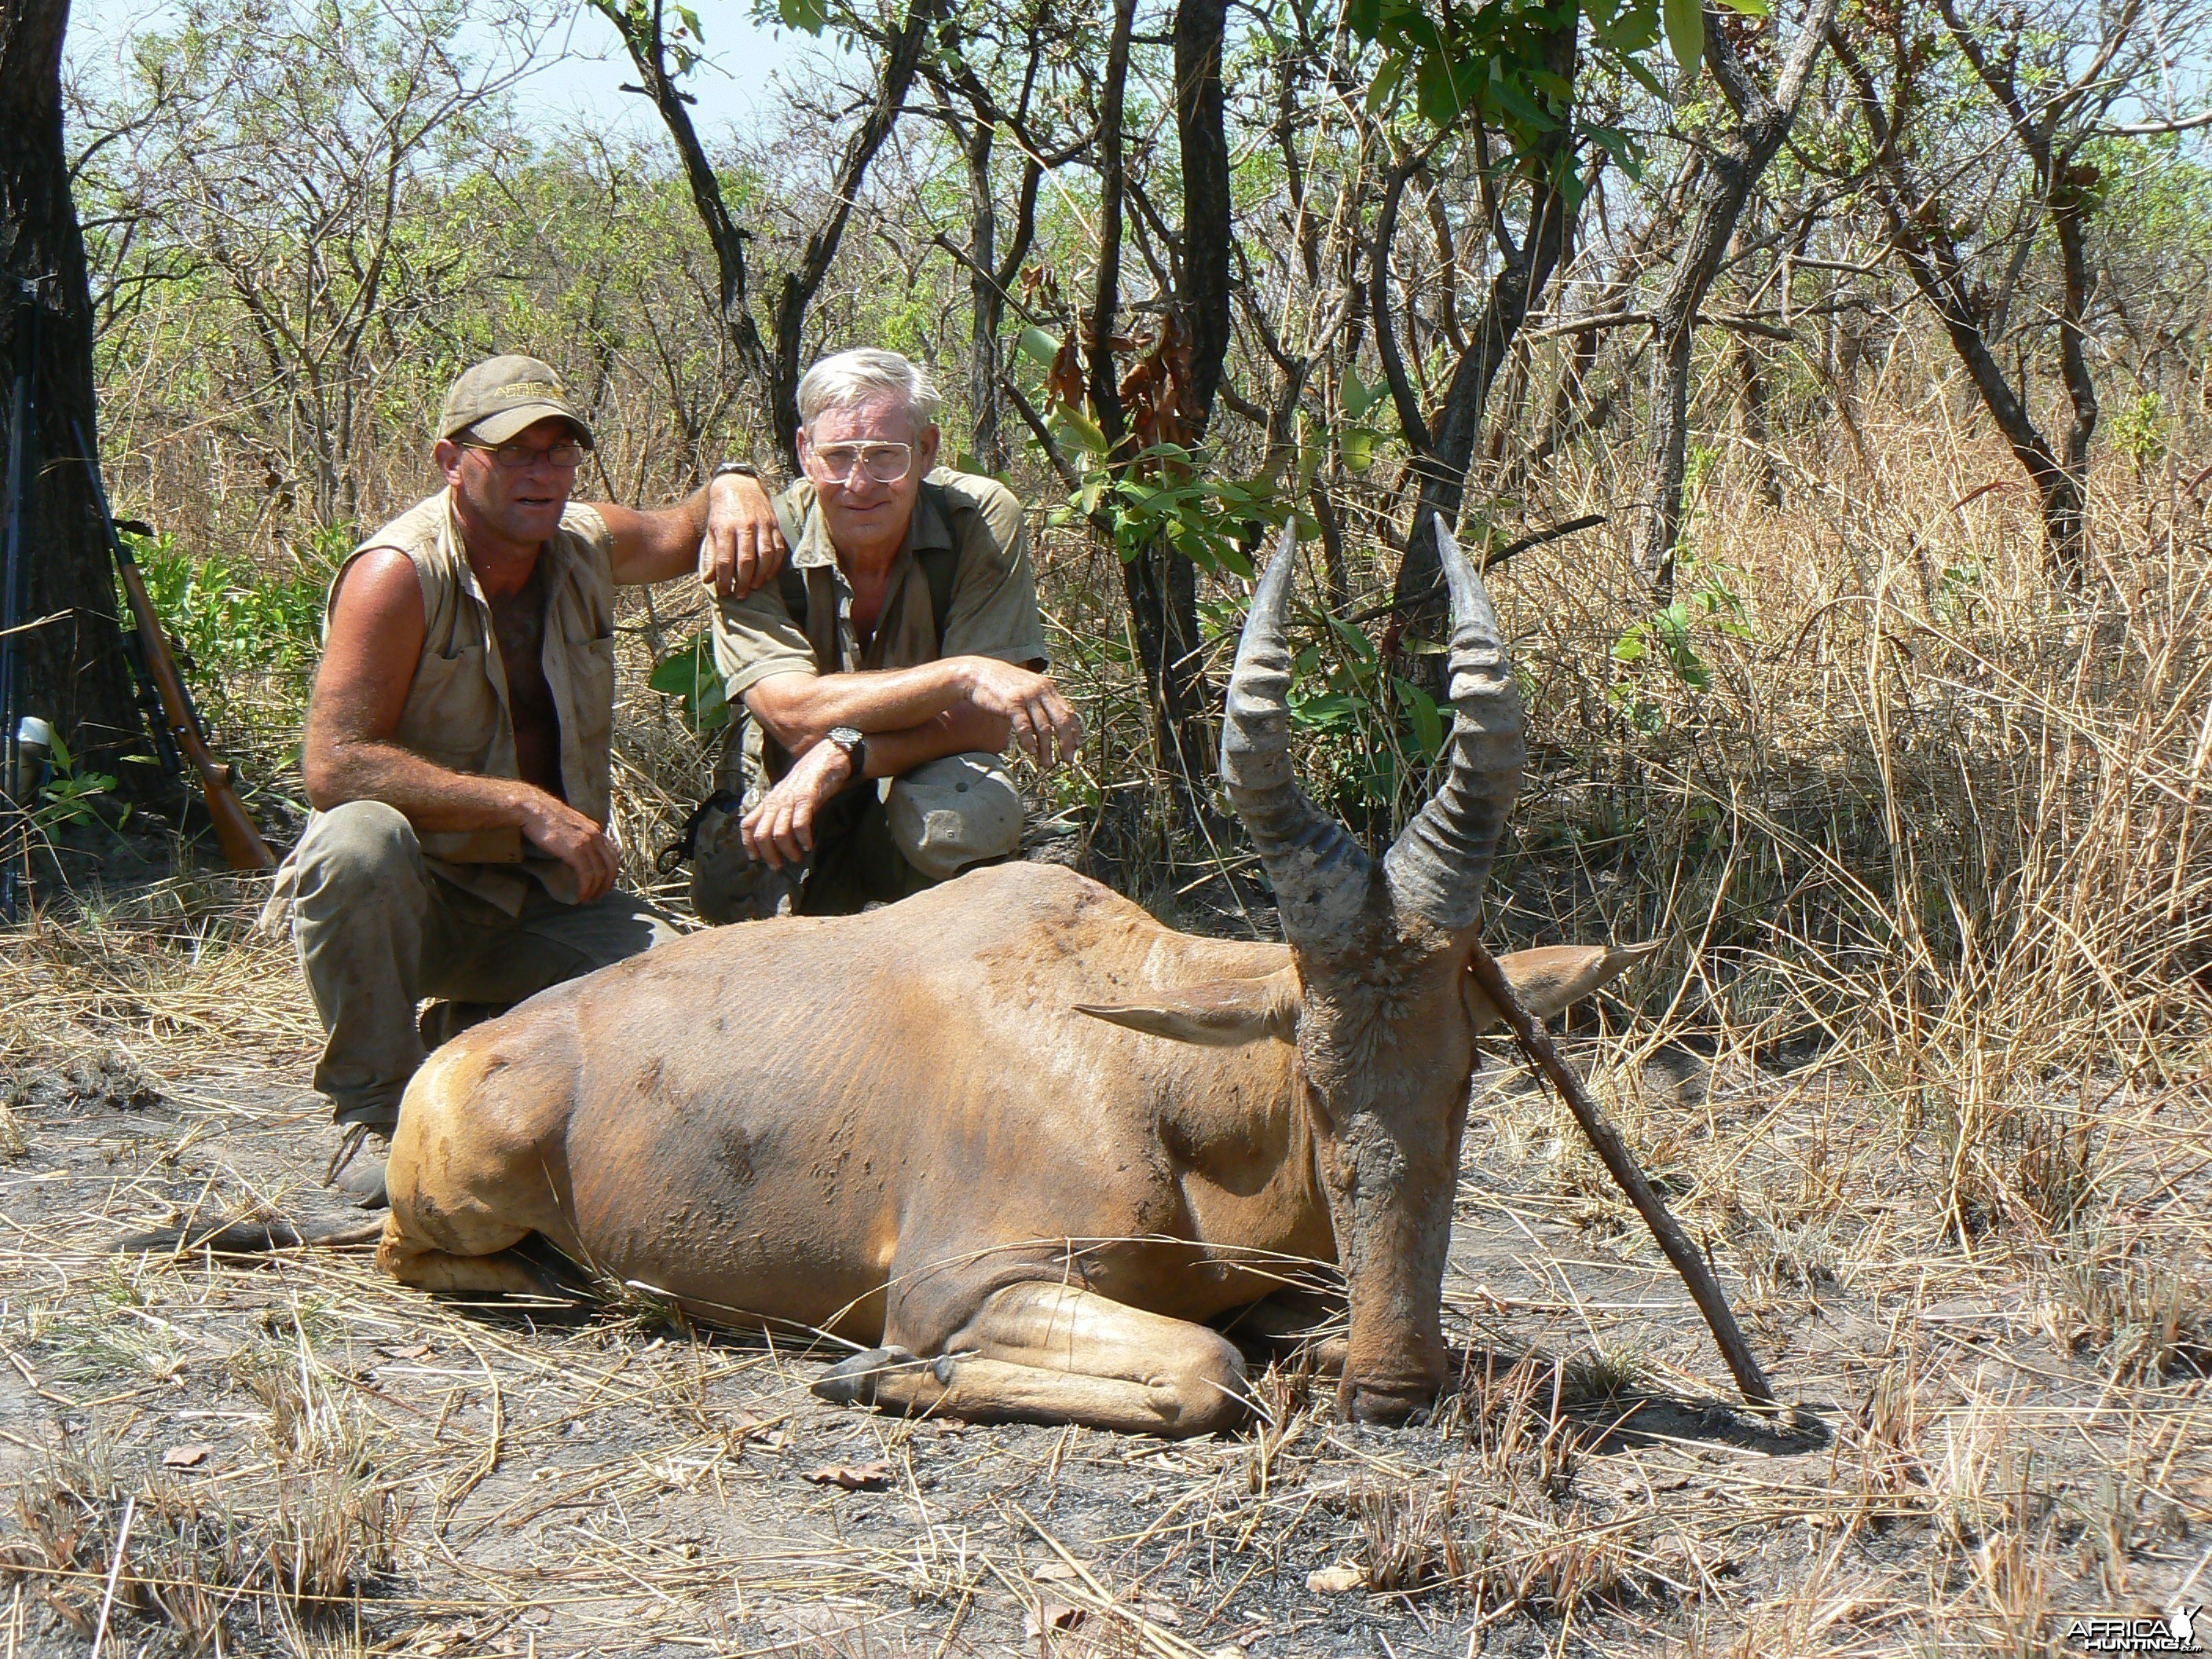 Lelwel hartebeest hunted in Central African Republic